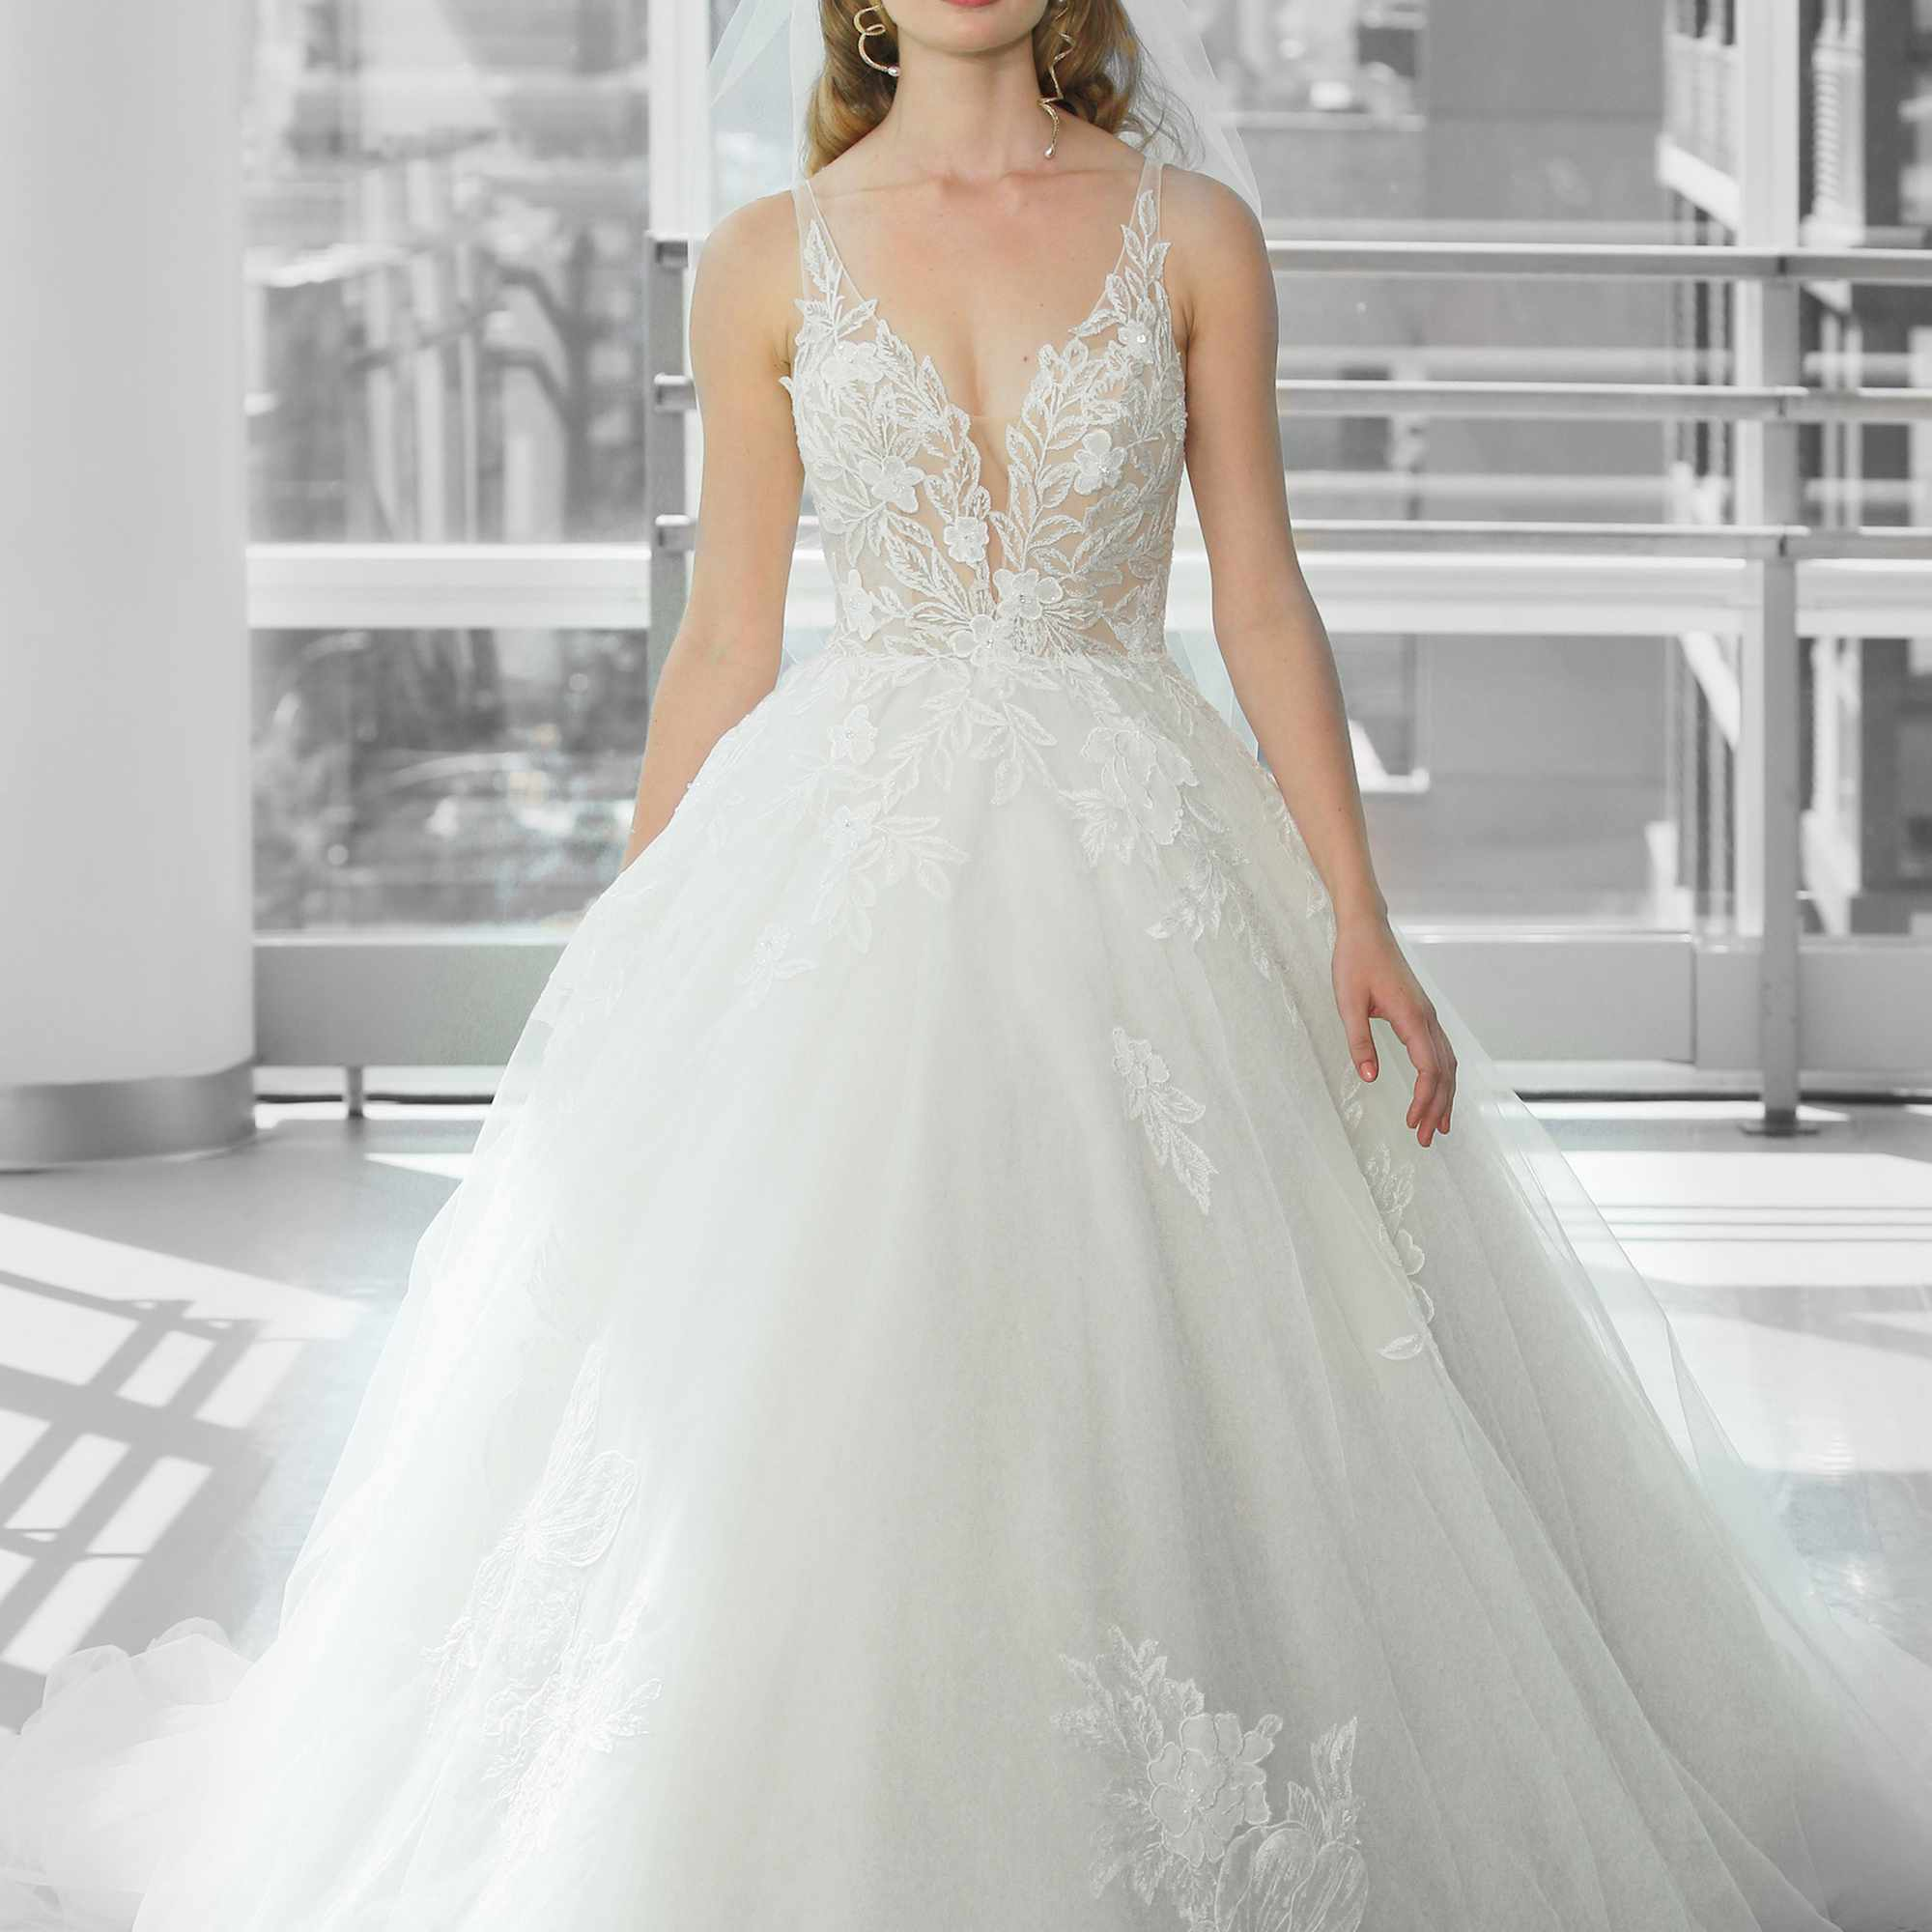 Justin Alexander Signature Bridal Wedding Dress Collection Fall 2020